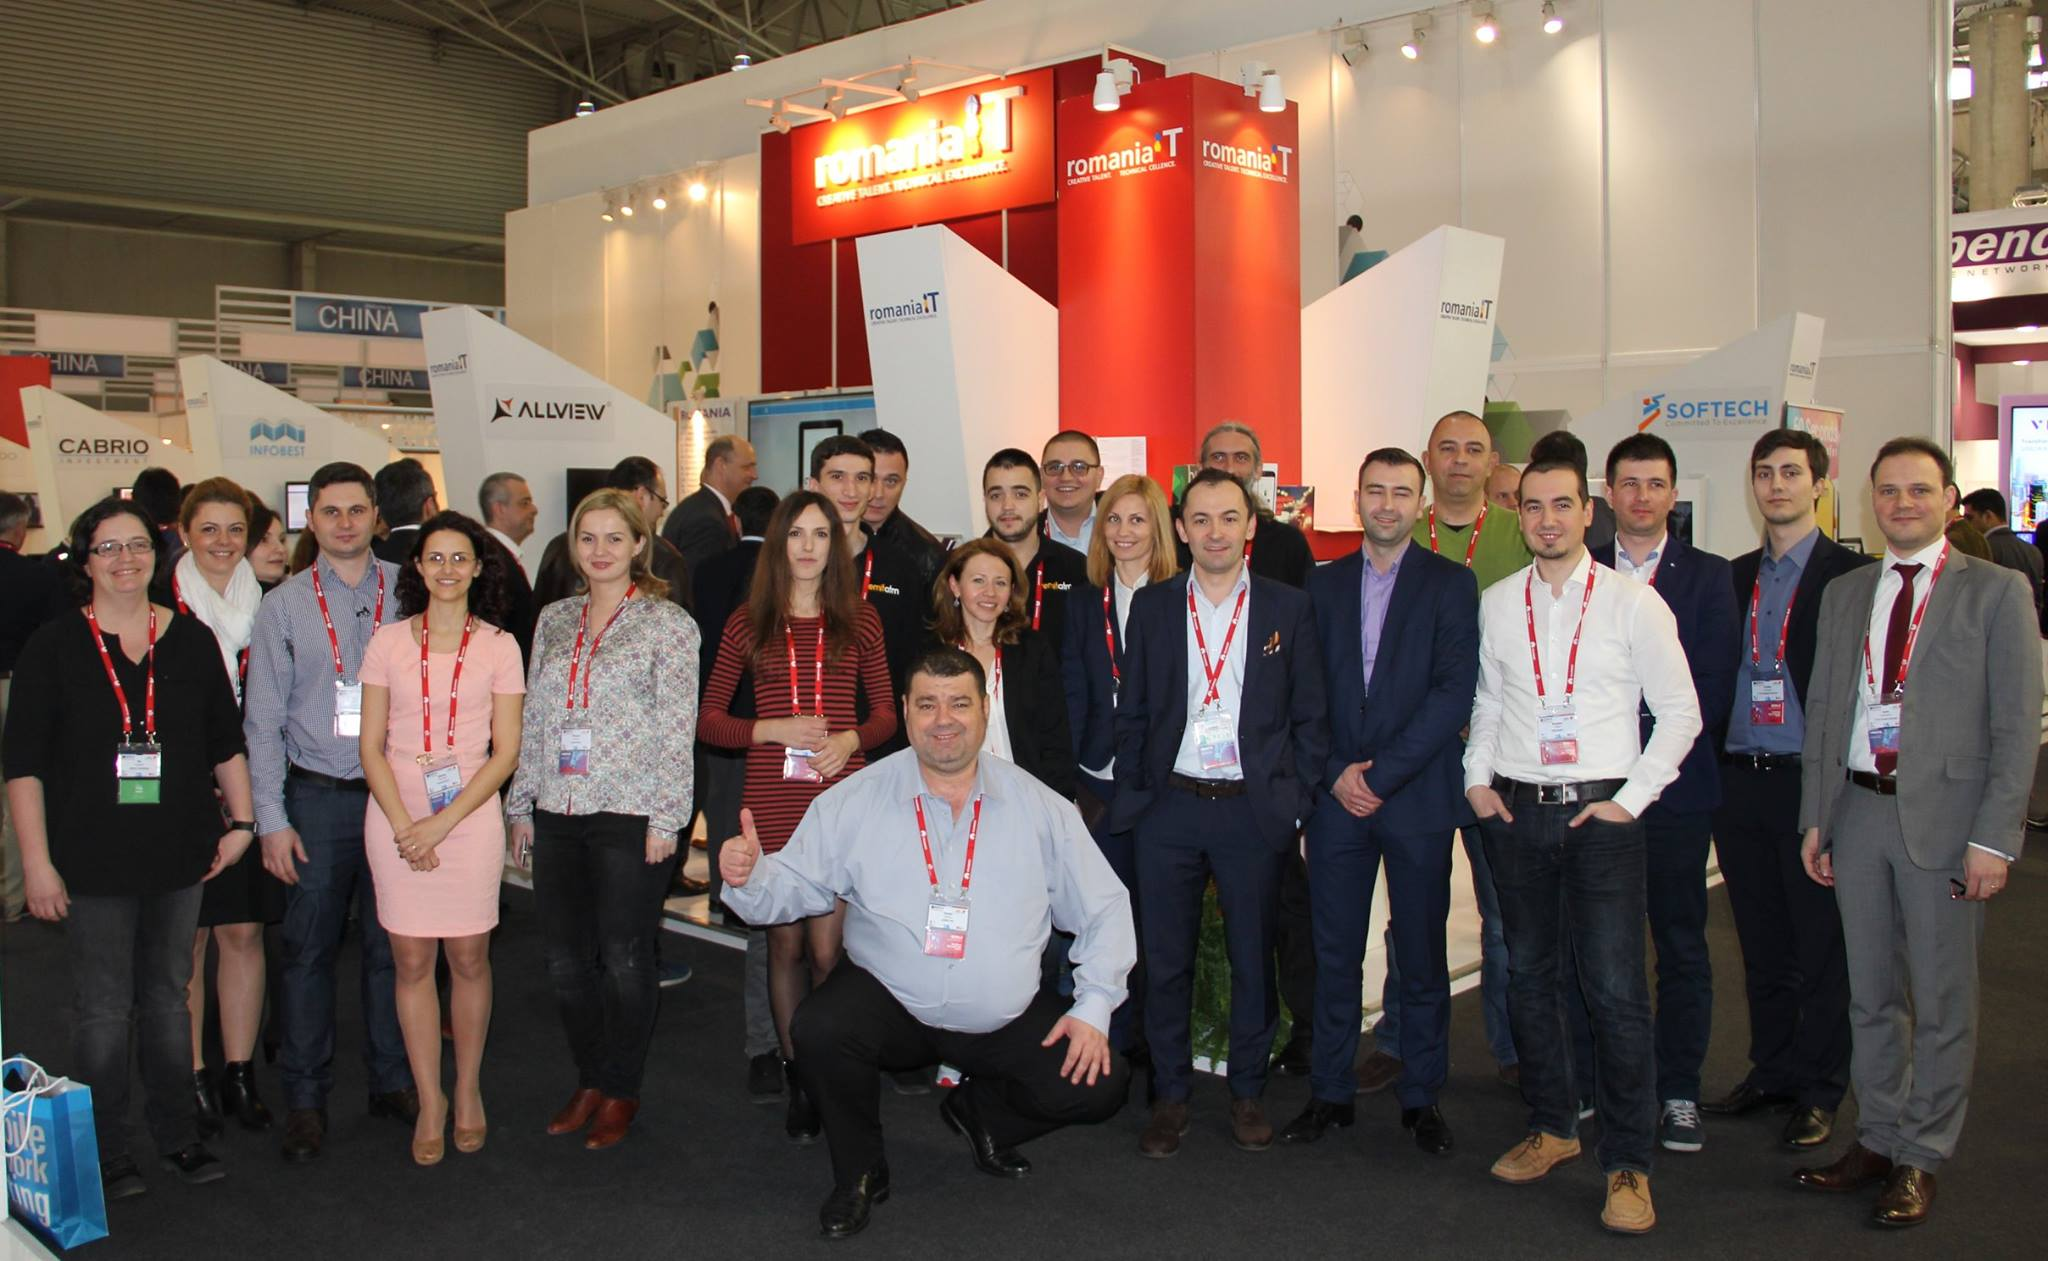 Romania IT at MWC 2016